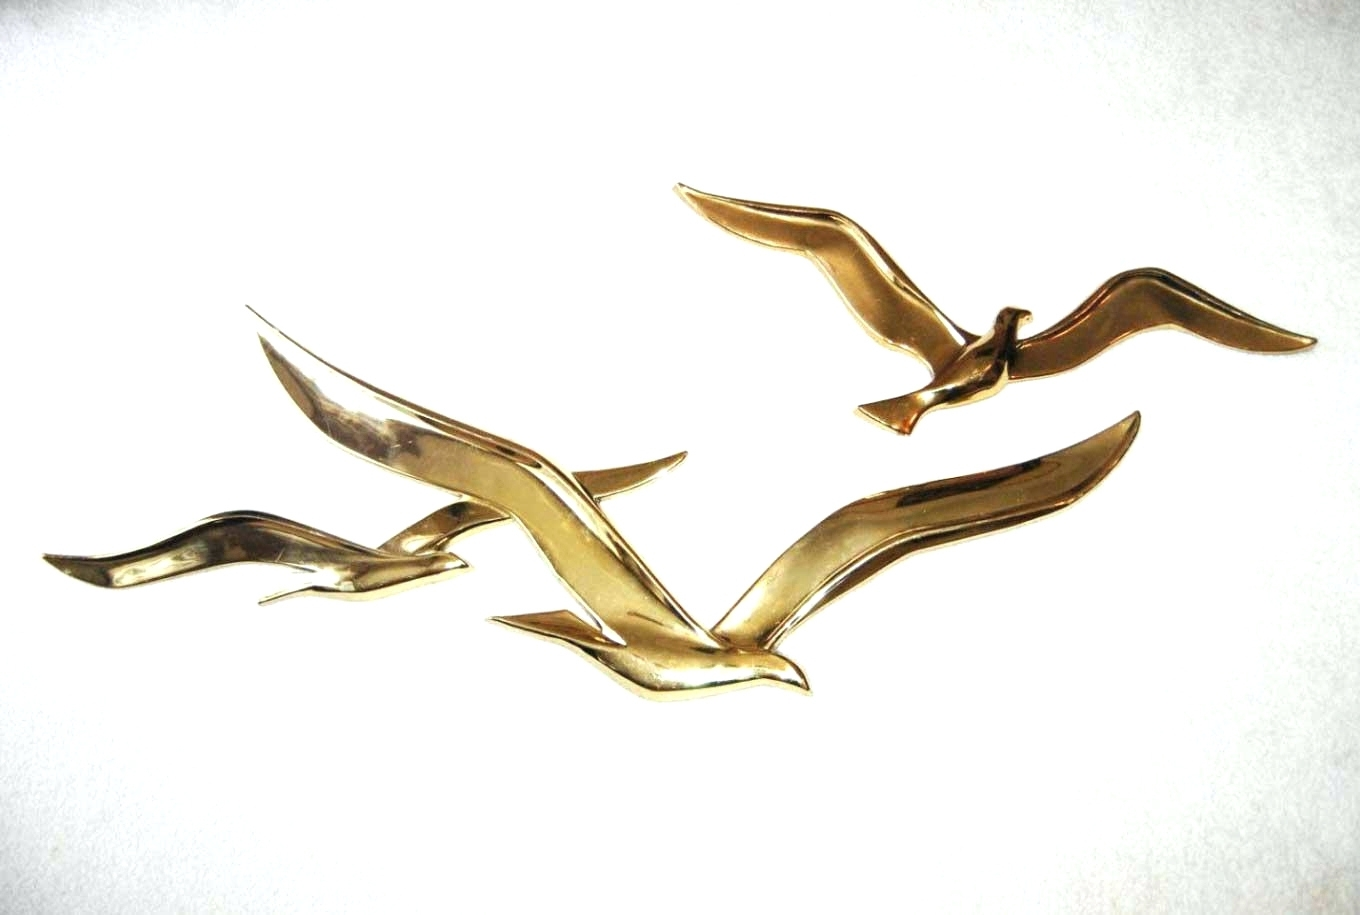 Recent Wall Arts ~ Metal Seagulls Wall Art Brass Seagulls Wall Art Flock Pertaining To Seagull Metal Wall Art (View 6 of 15)